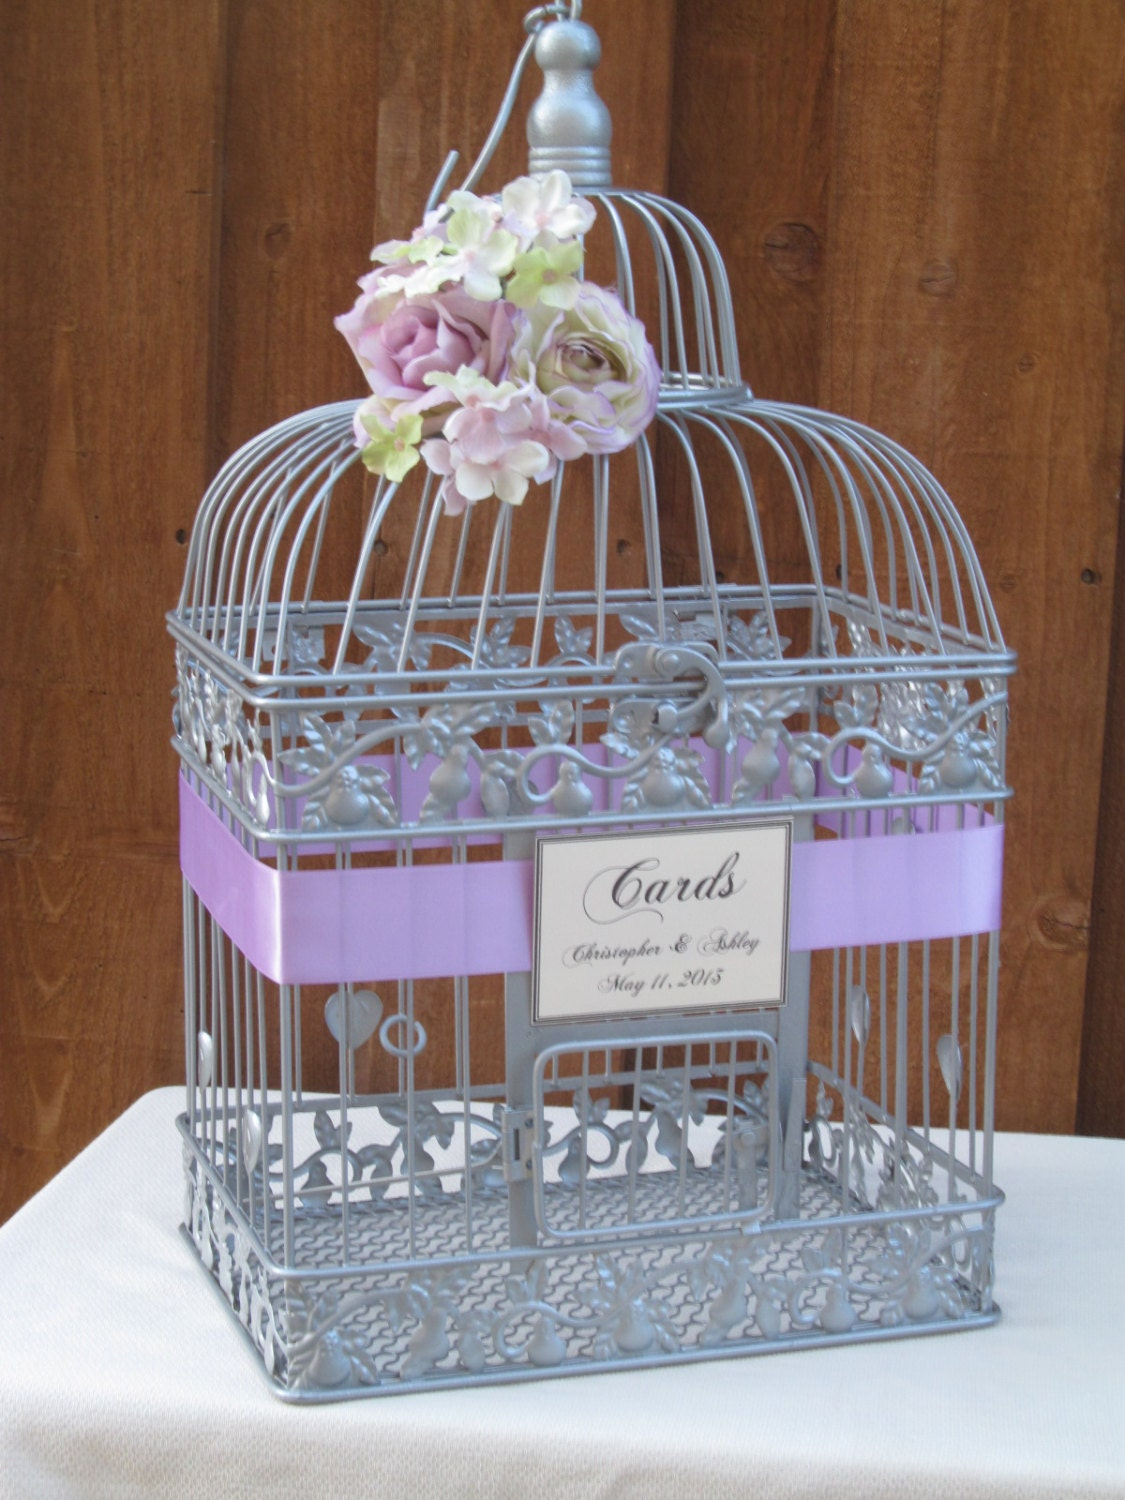 Silver Wedding Gift Card Holder : EtsyYour place to buy and sell all things handmade, vintage, and ...